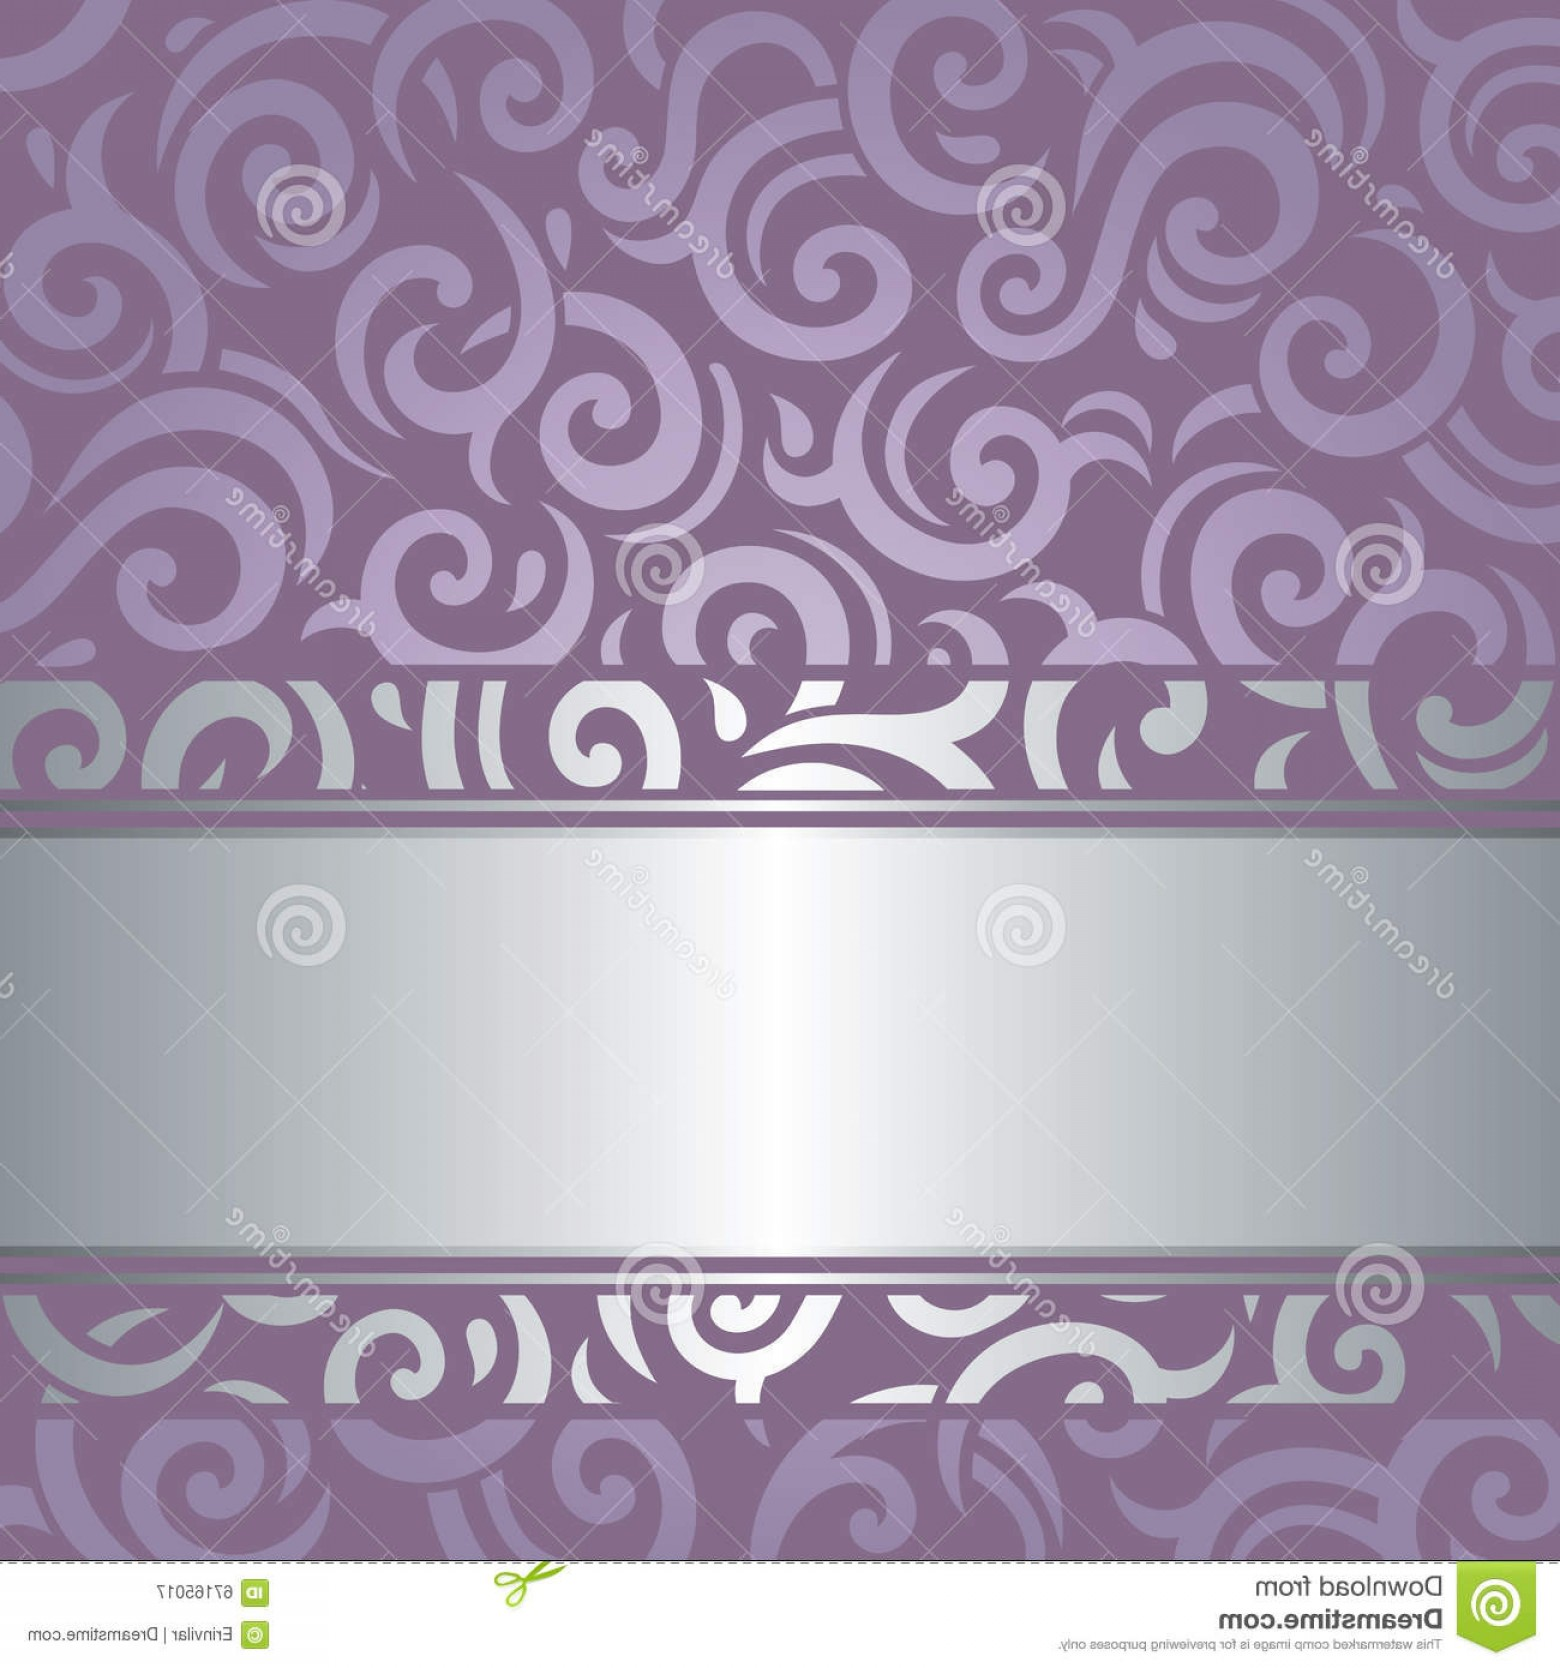 Lilac Wedding Vectors: Lavender Violet Vector Background Wedding Luxury Vintage Design Illustration